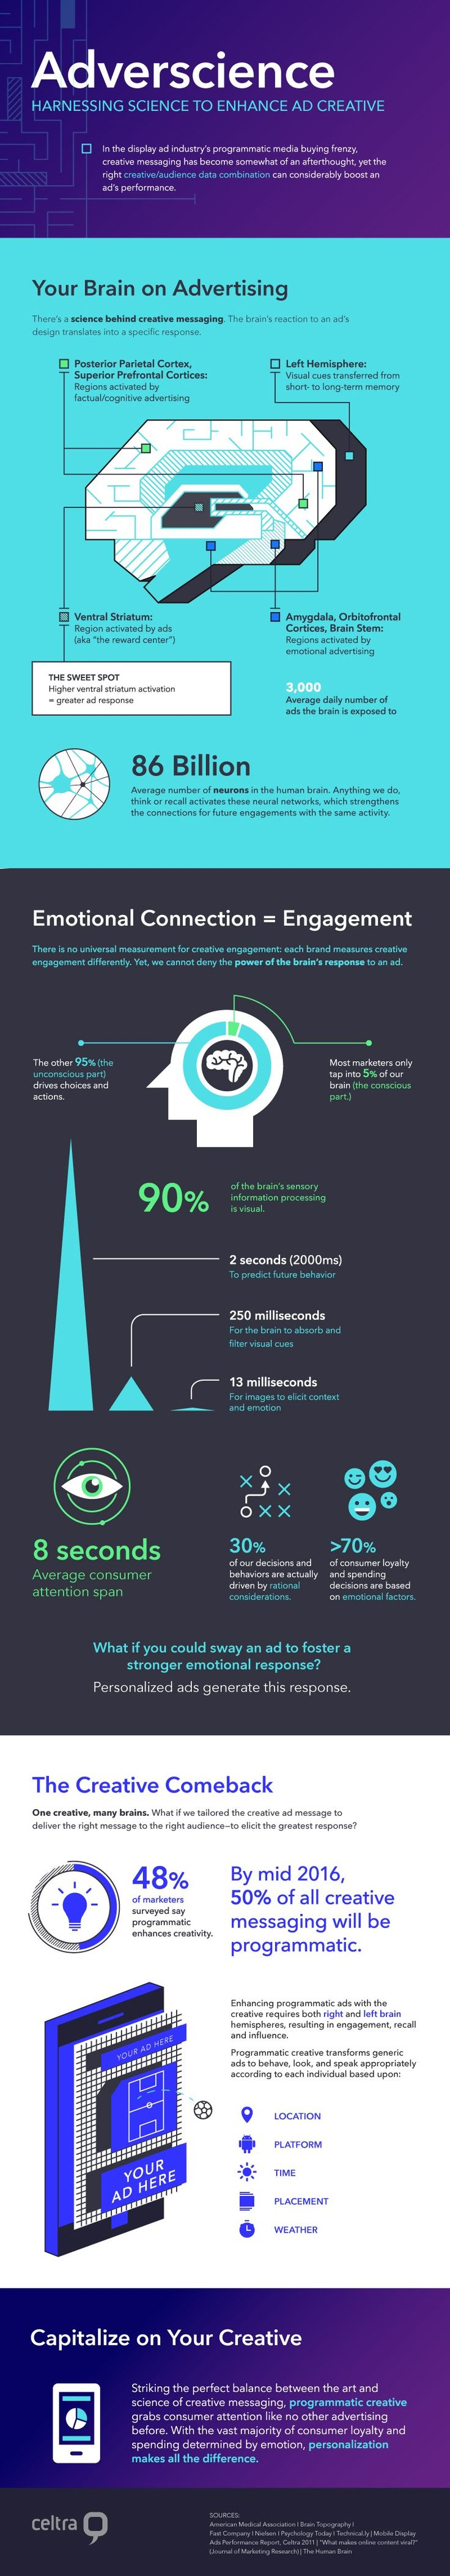 c7a02d1043108fd9acc4e1fc0e415ad1 Digital Marketing : Adverscience - Harnessing Science to Enhance Ad Creative - #infographic